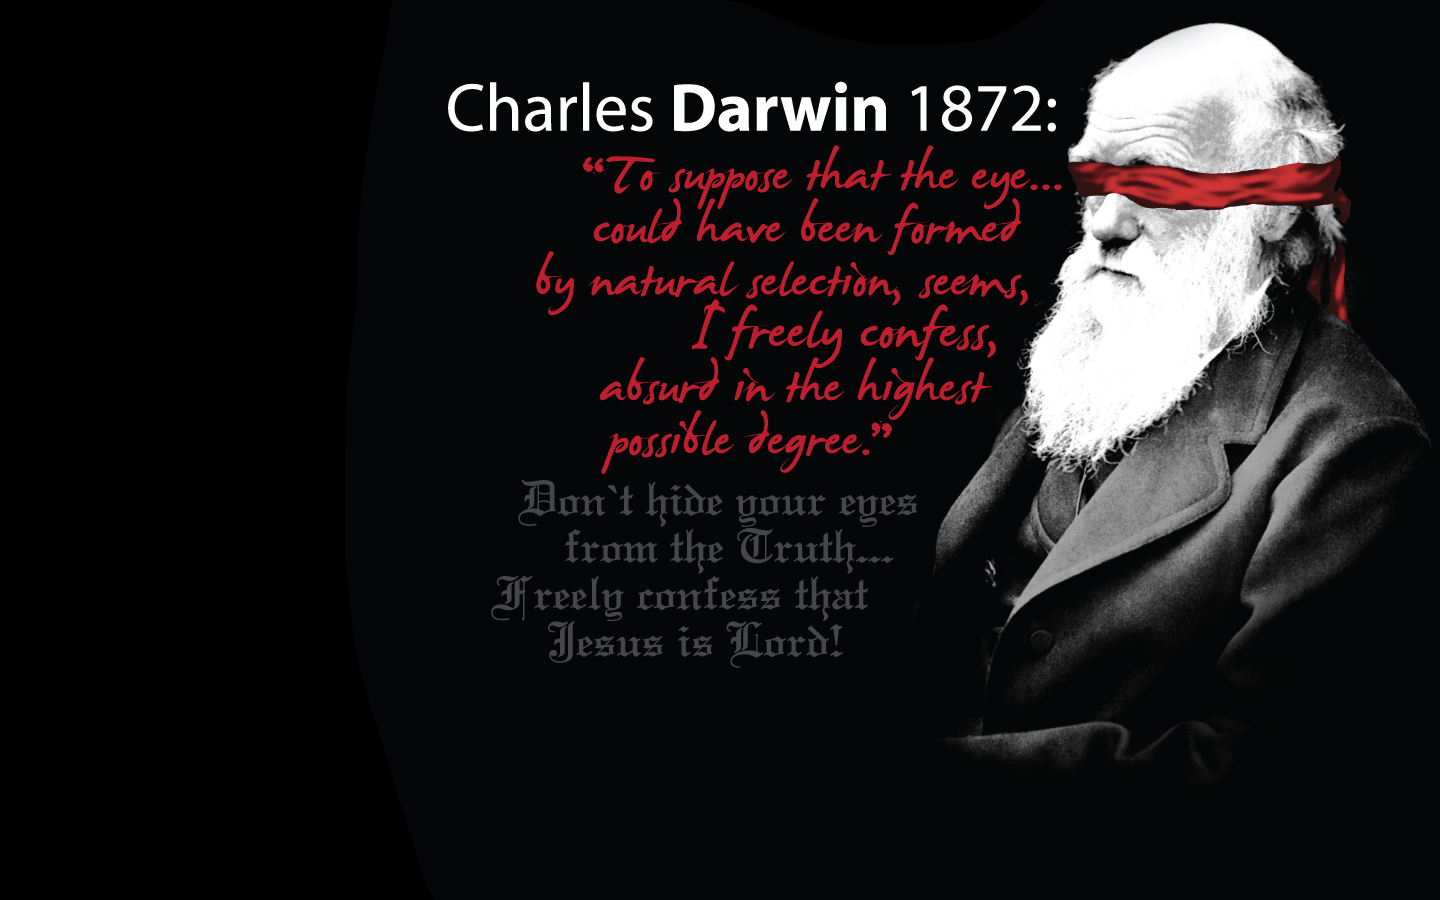 Darwin was Wrong Wallpaper   Christian Wallpapers and Backgrounds 1440x900